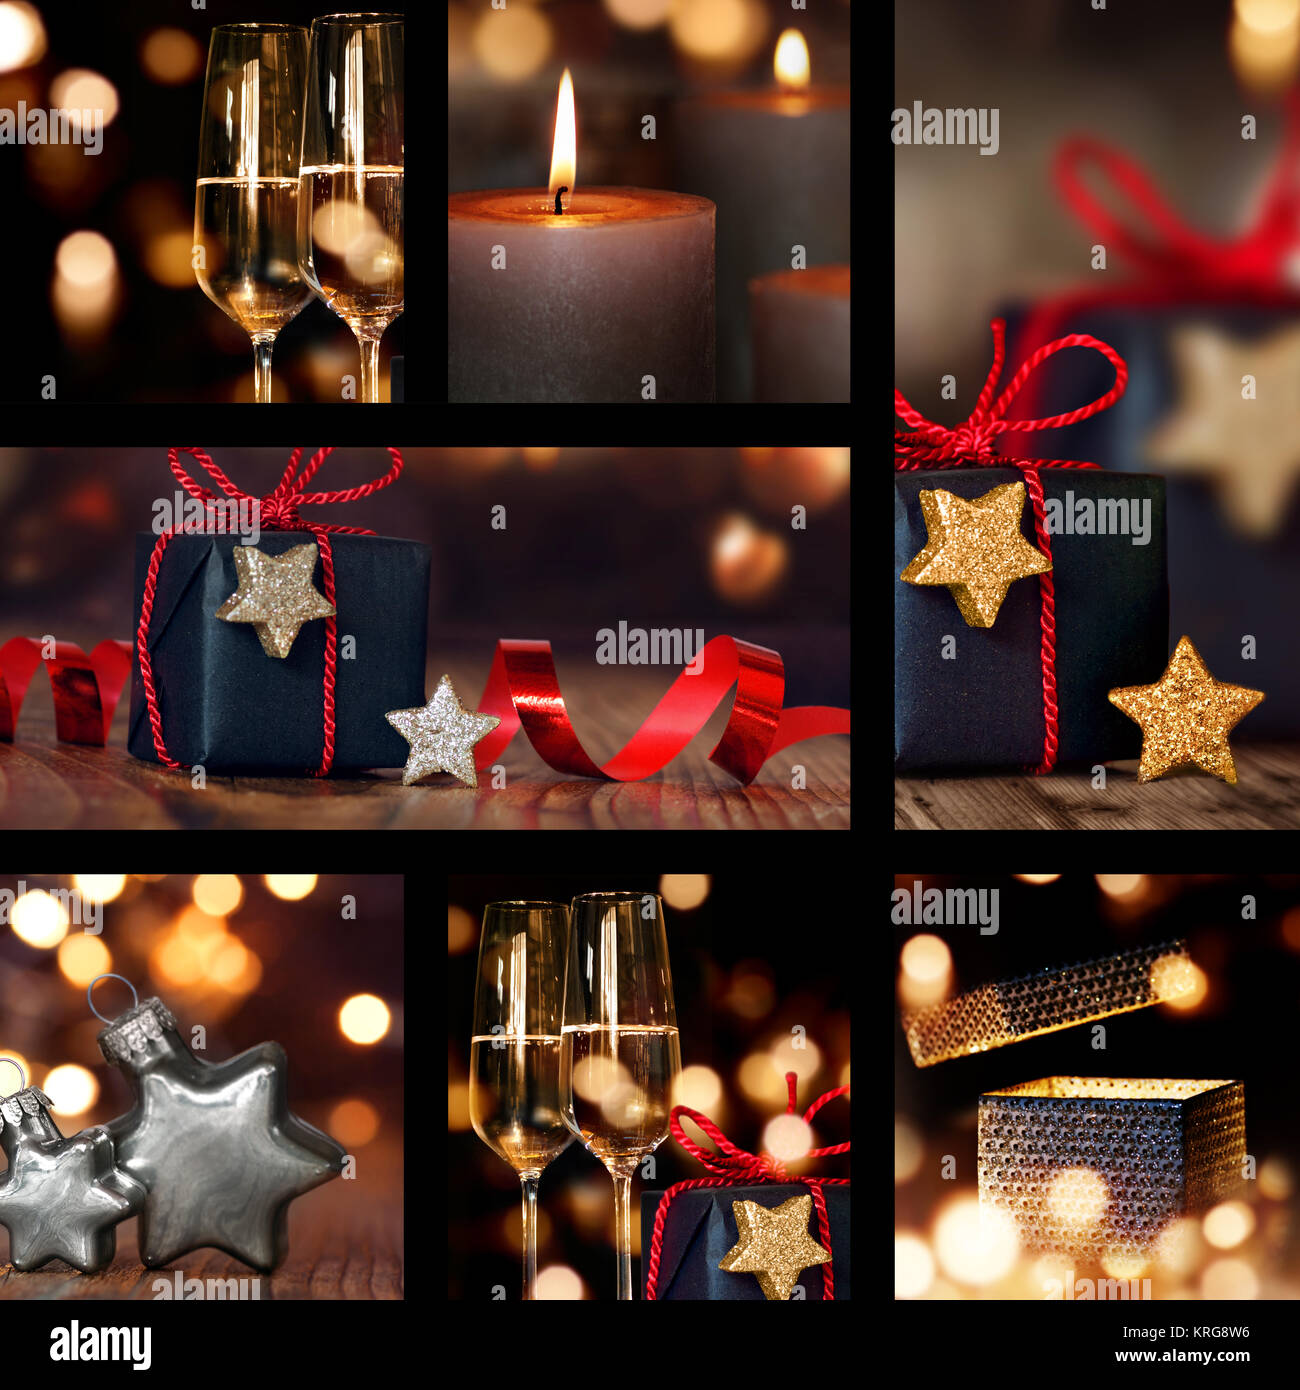 Phenomenal Collage Of Christmas Table Decorations Stock Photo Download Free Architecture Designs Scobabritishbridgeorg